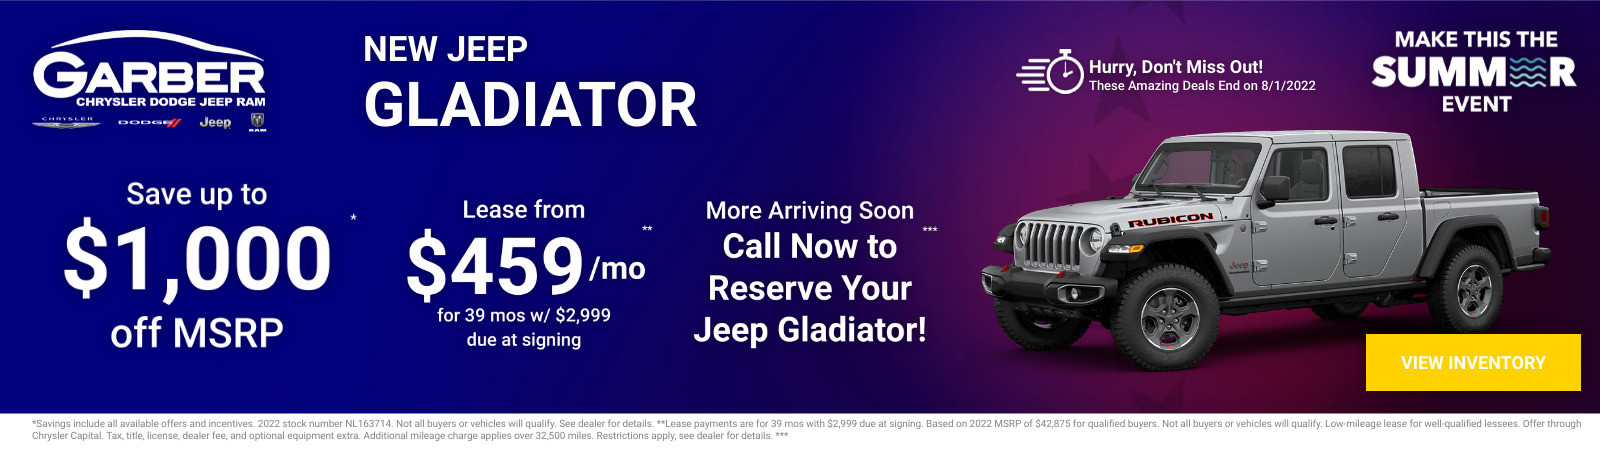 New Jeep Gladiator Current Deals and Offers in Green Cove Springs, FL